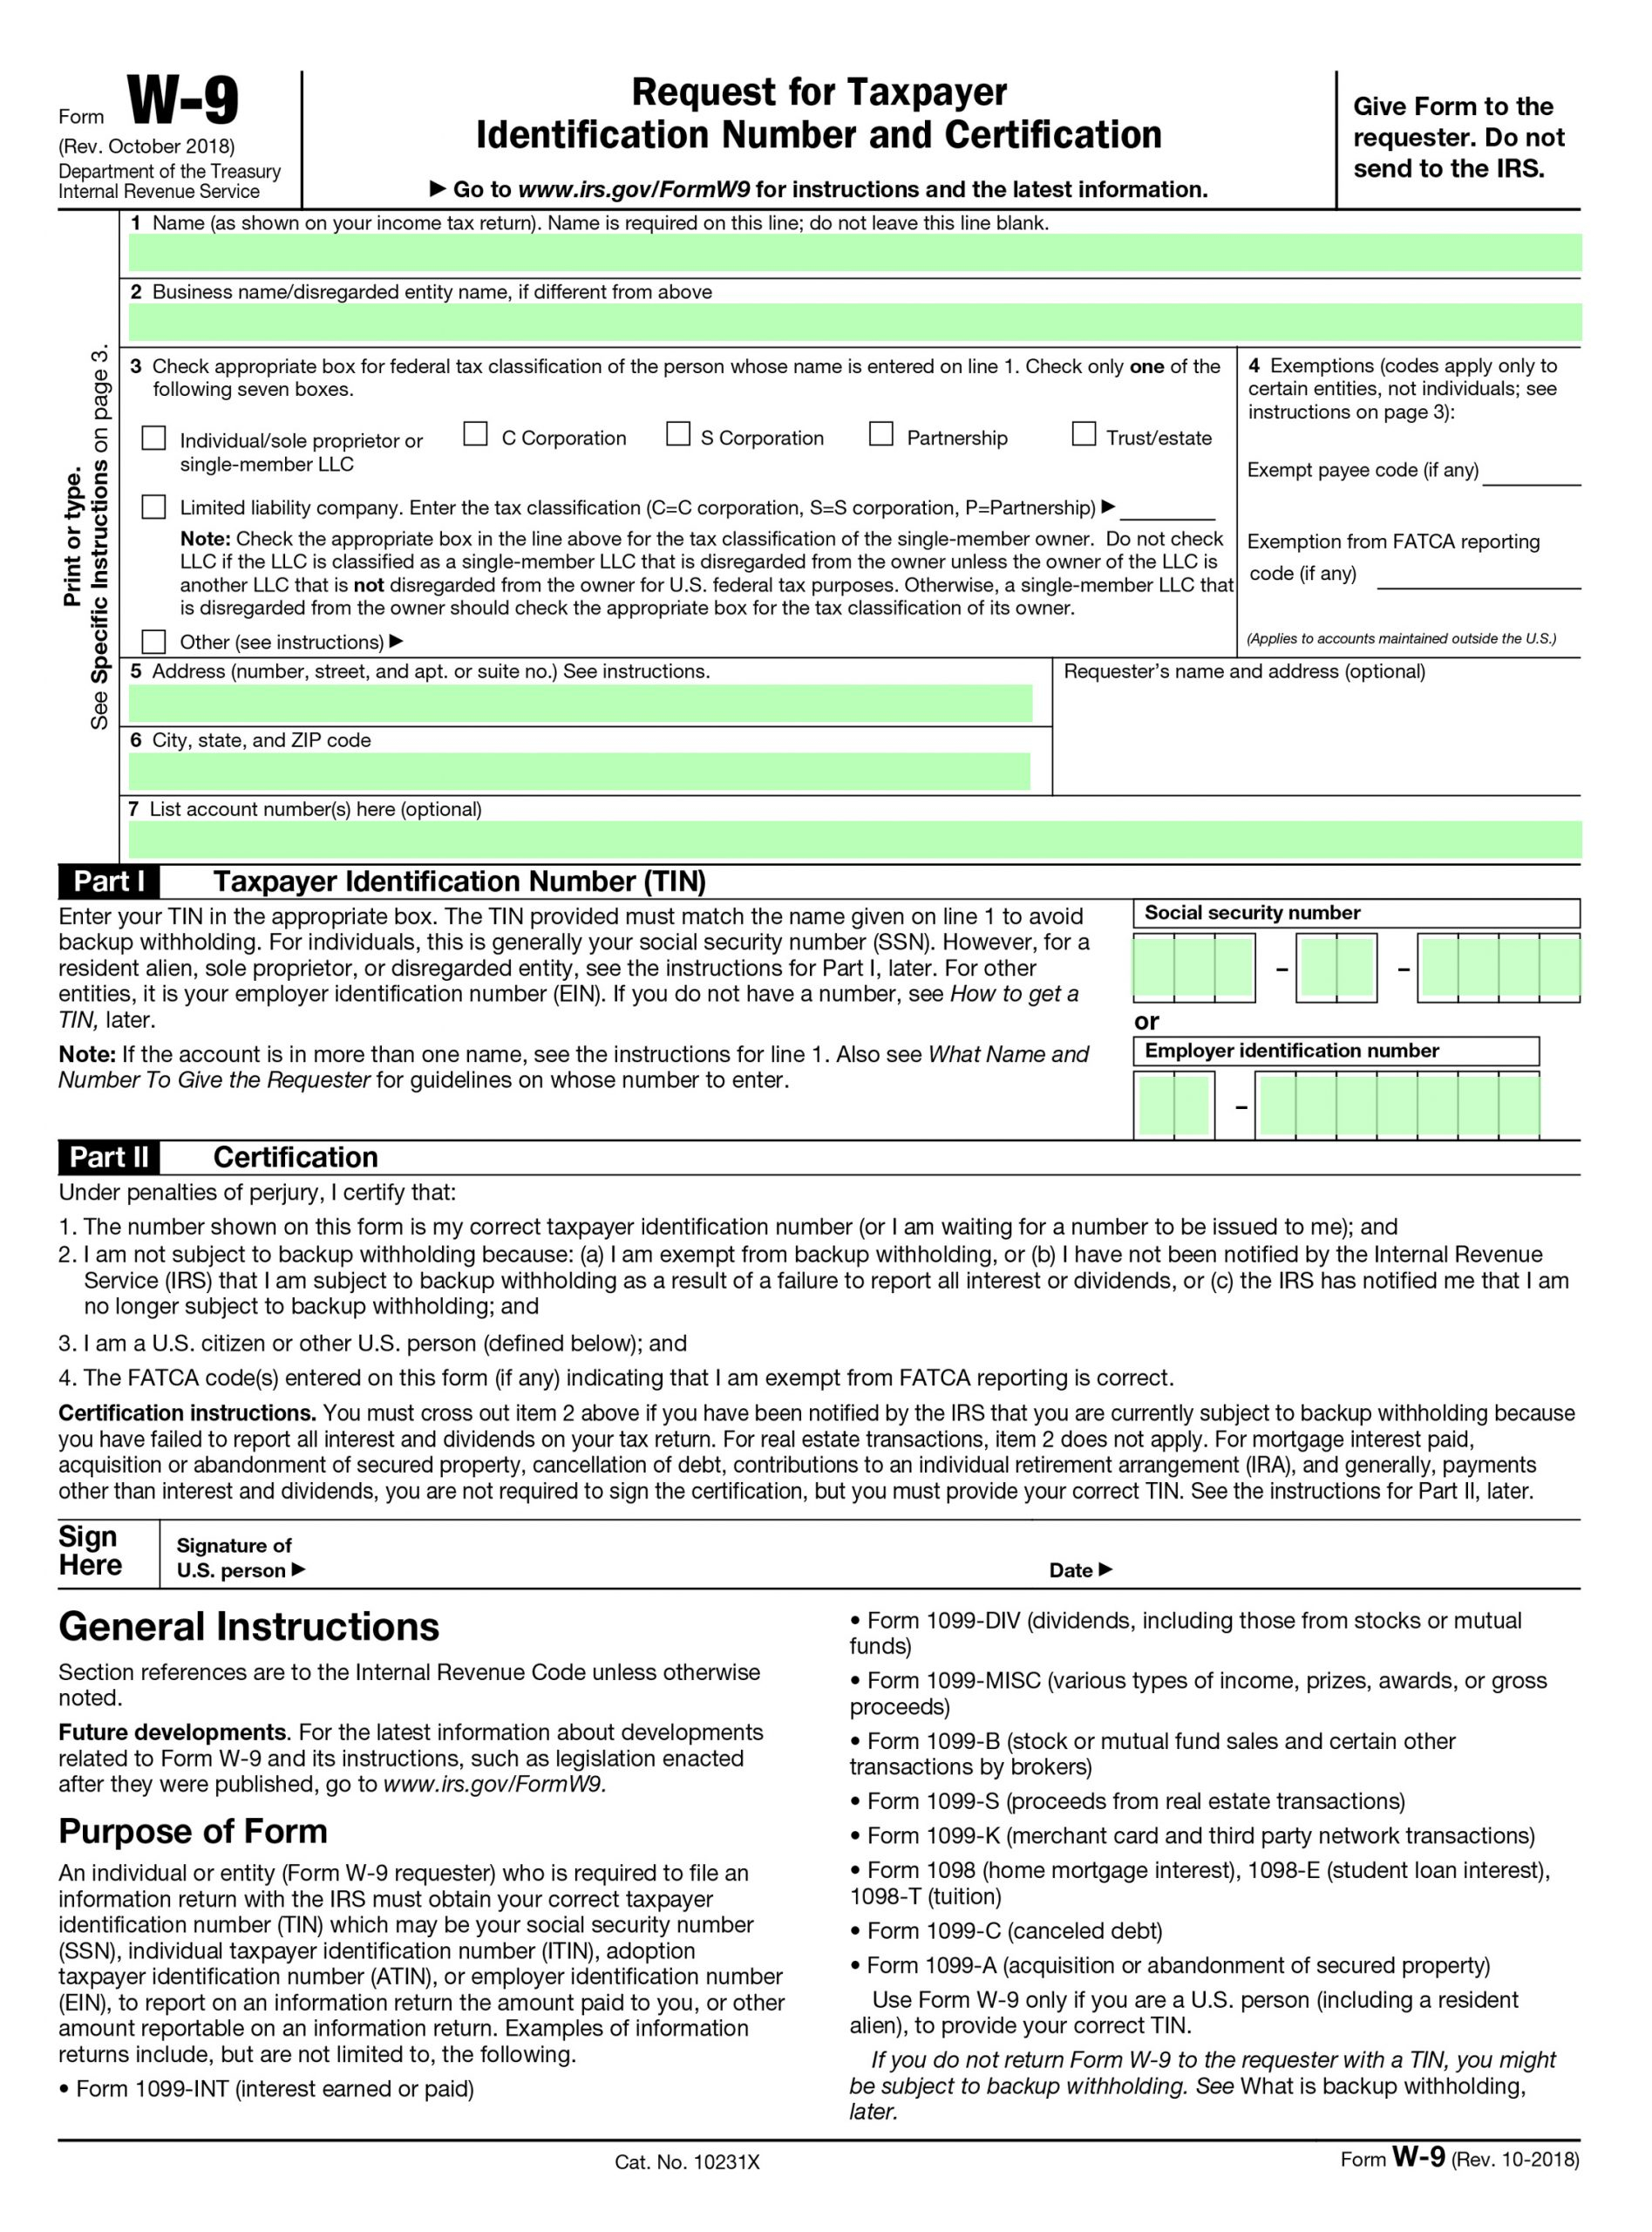 Filling Irs Form W-9 - Editable, Printable Blank